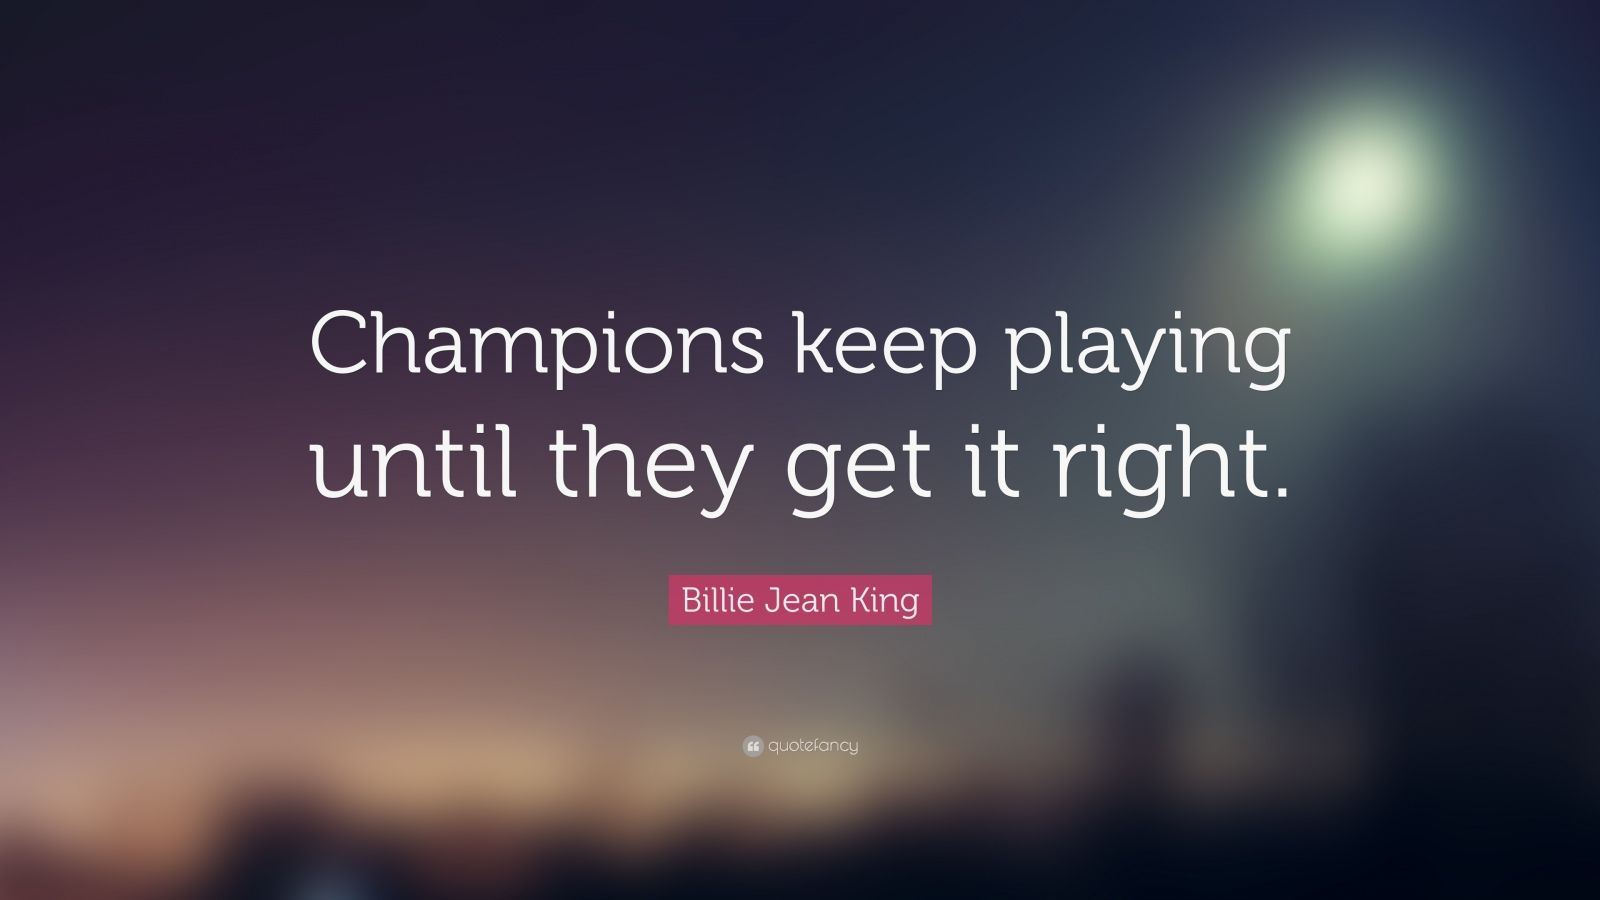 King Quotes Billie Jean King Quotes (91 wallpapers)   Quotefancy King Quotes